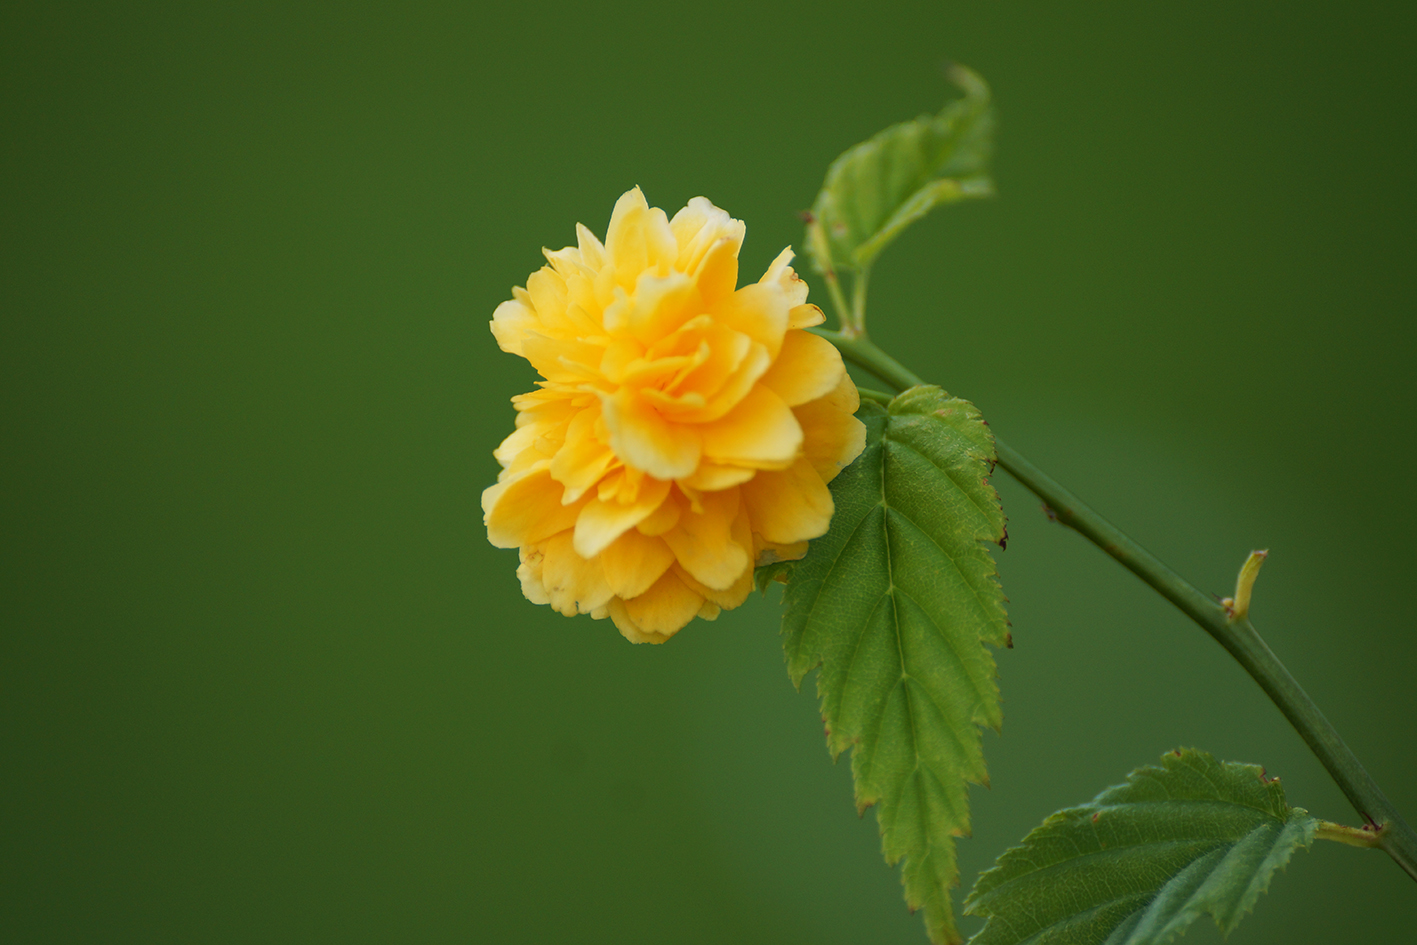 beautiful flower photo yellow flower